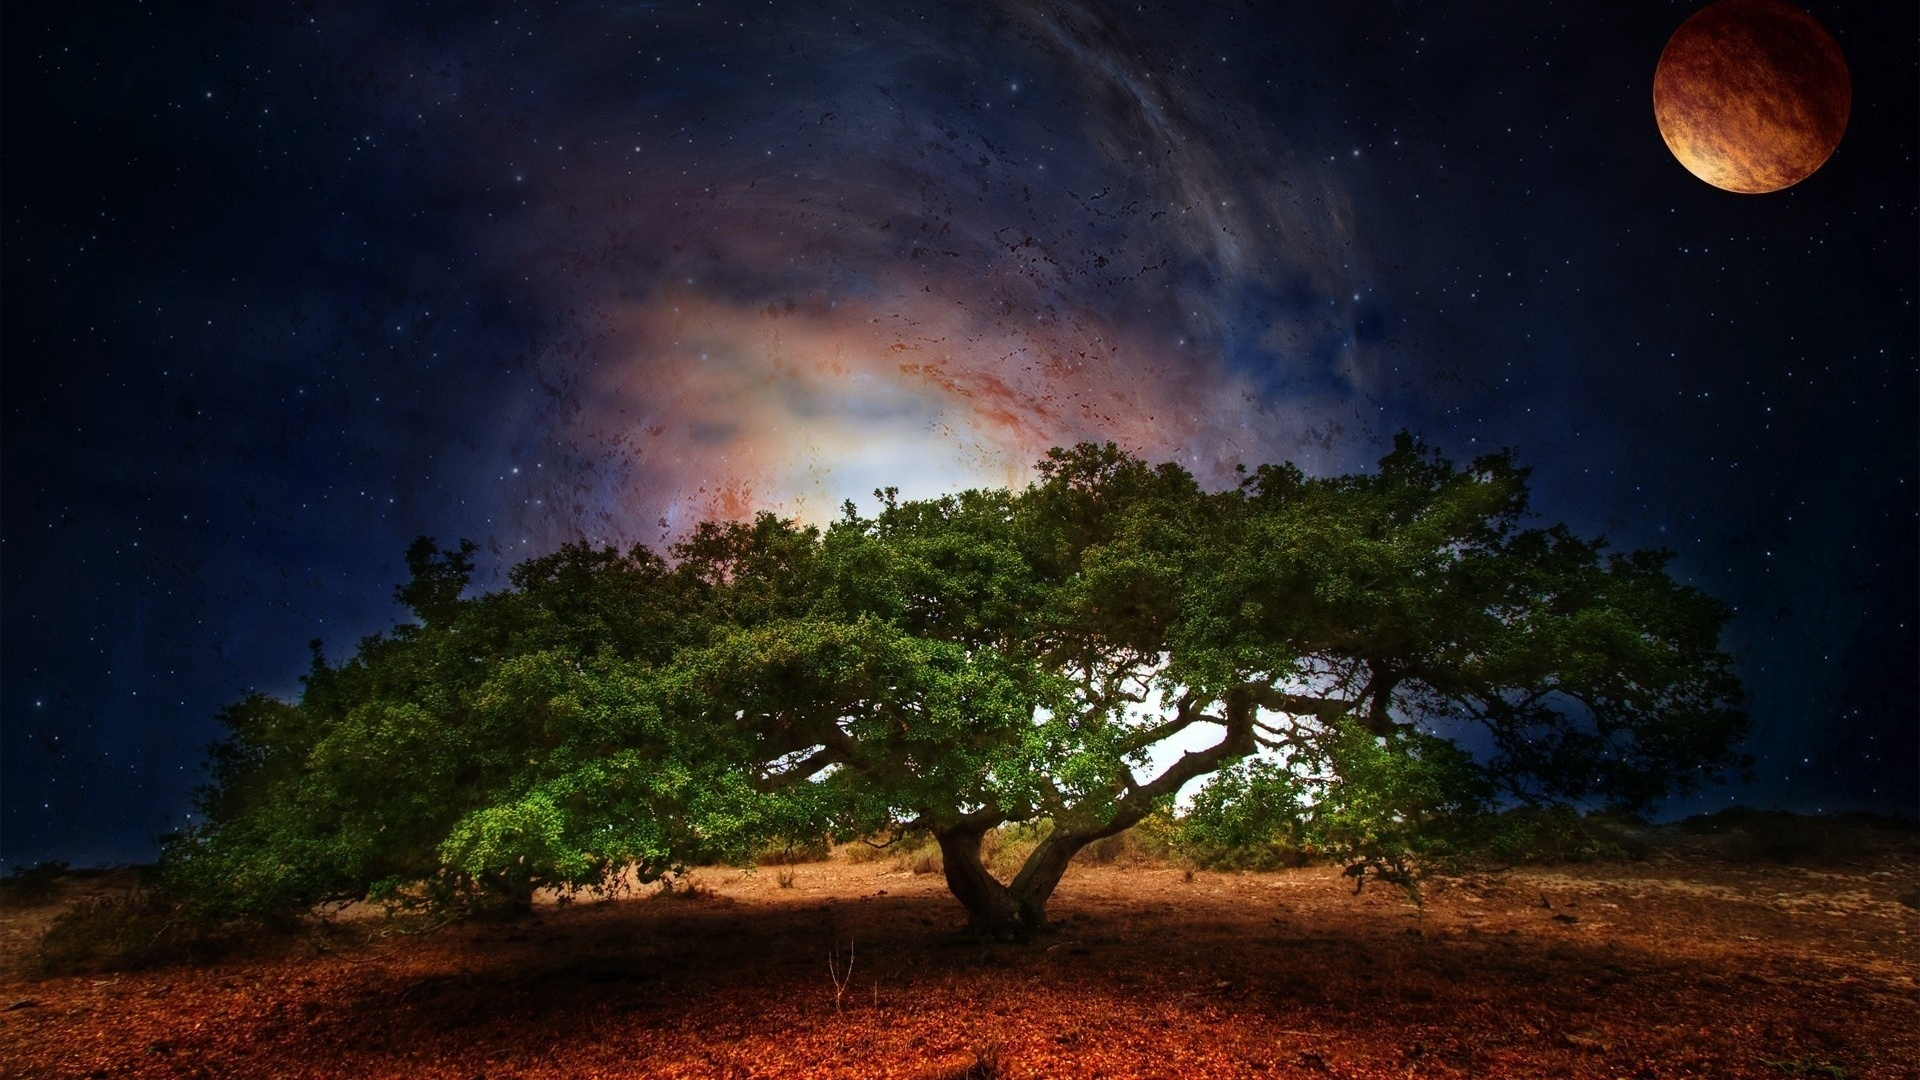 Wallpaper Planet, Green, Nature, Space, Leaves, Tree - Green Nature - HD Wallpaper